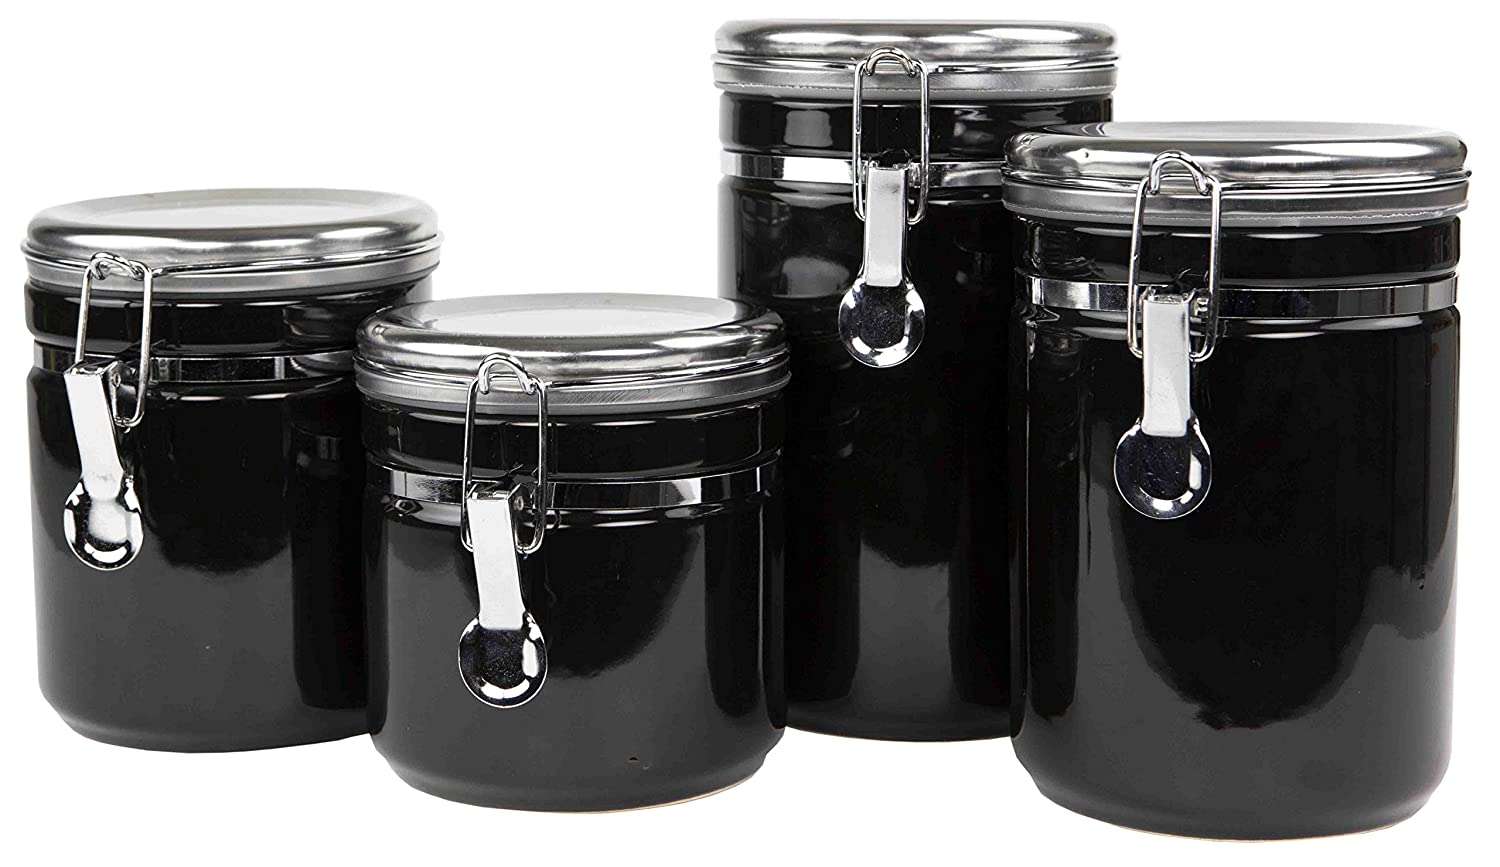 Home Basics 4PC Canister Food Storage Set with Stainless Steel Top (Black)